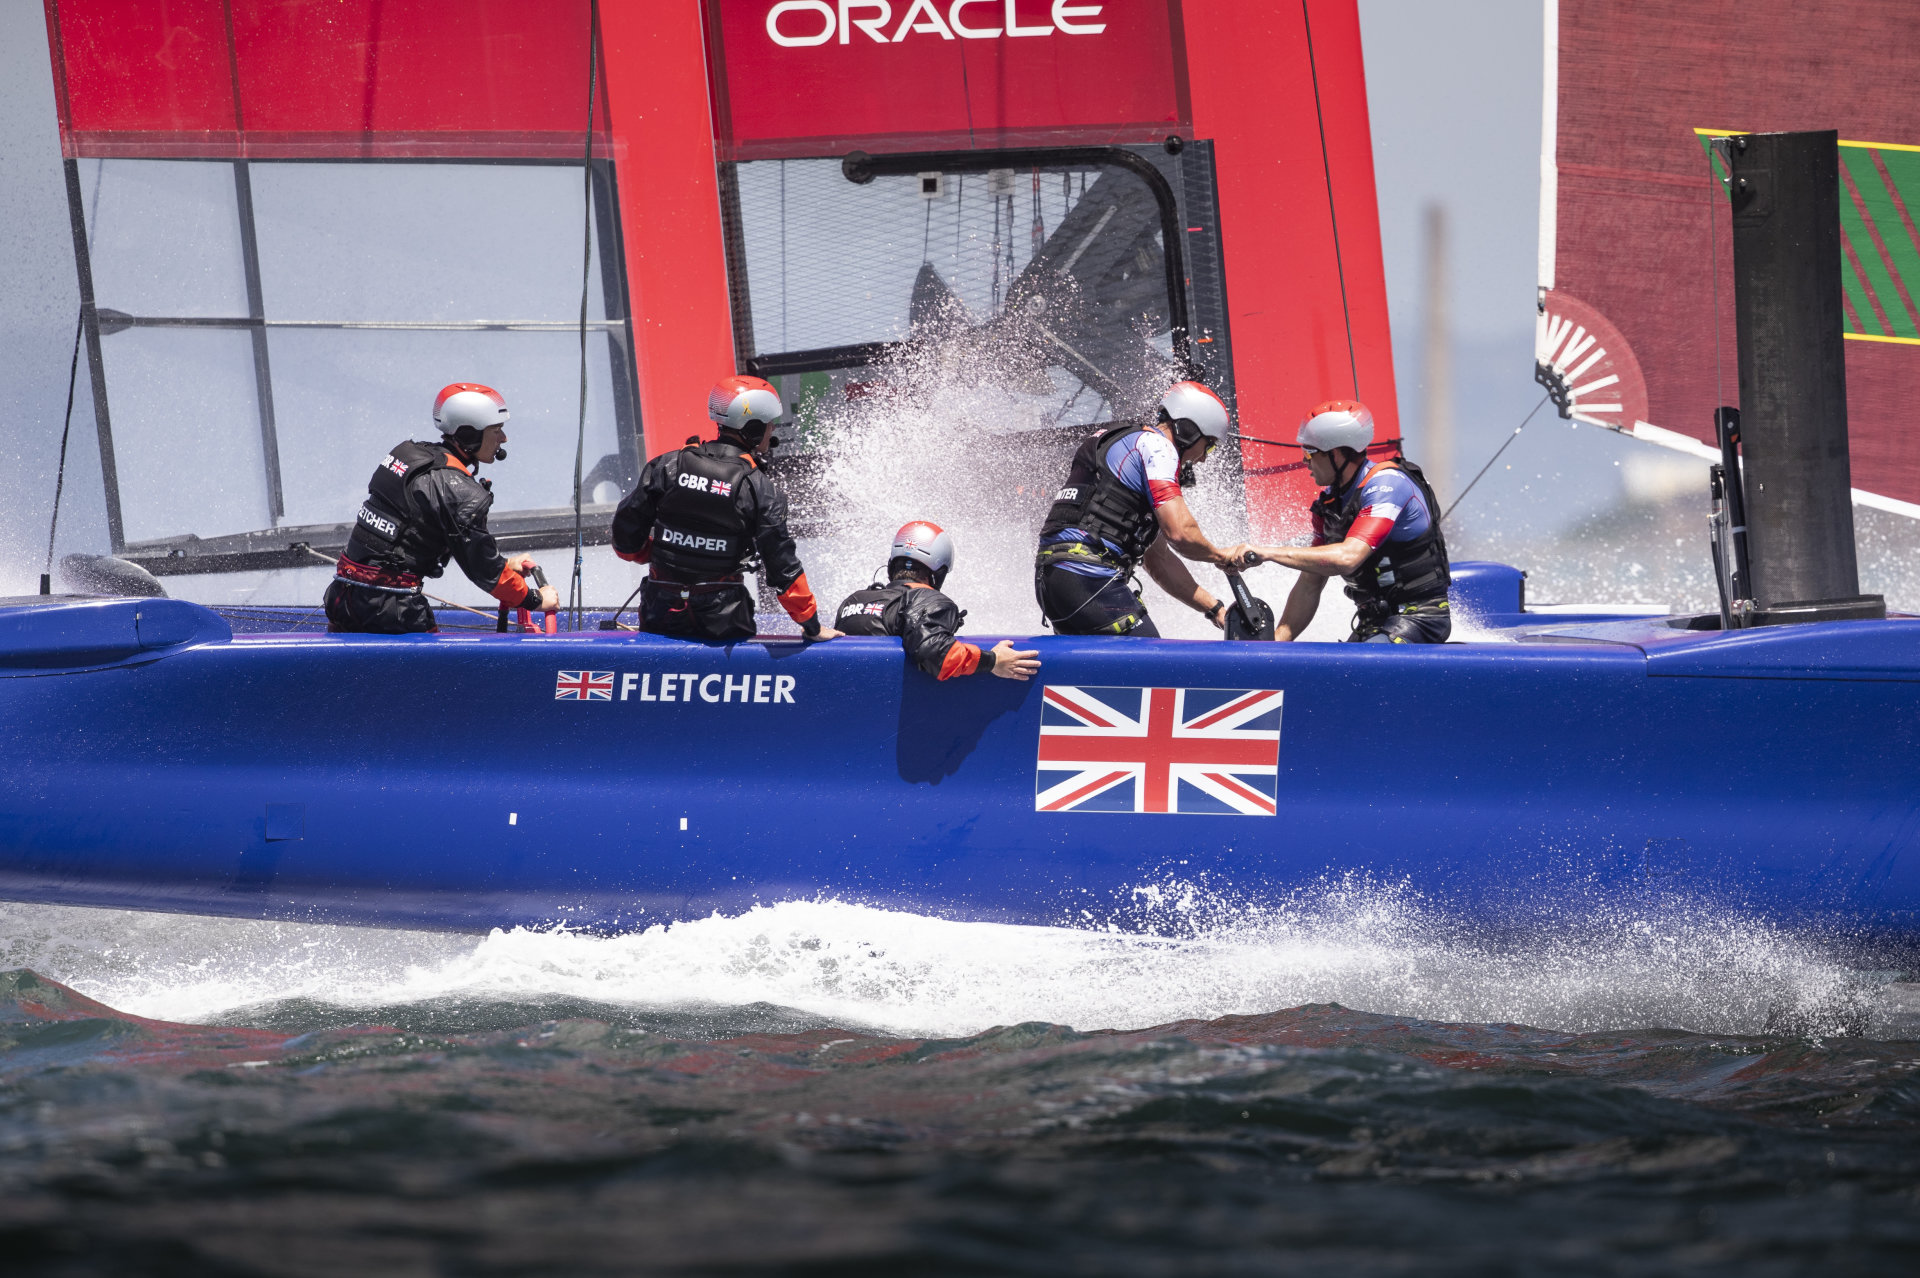 OPEN CREW TRIALS FOR THE GREAT BRITAIN SAILGP TEAM